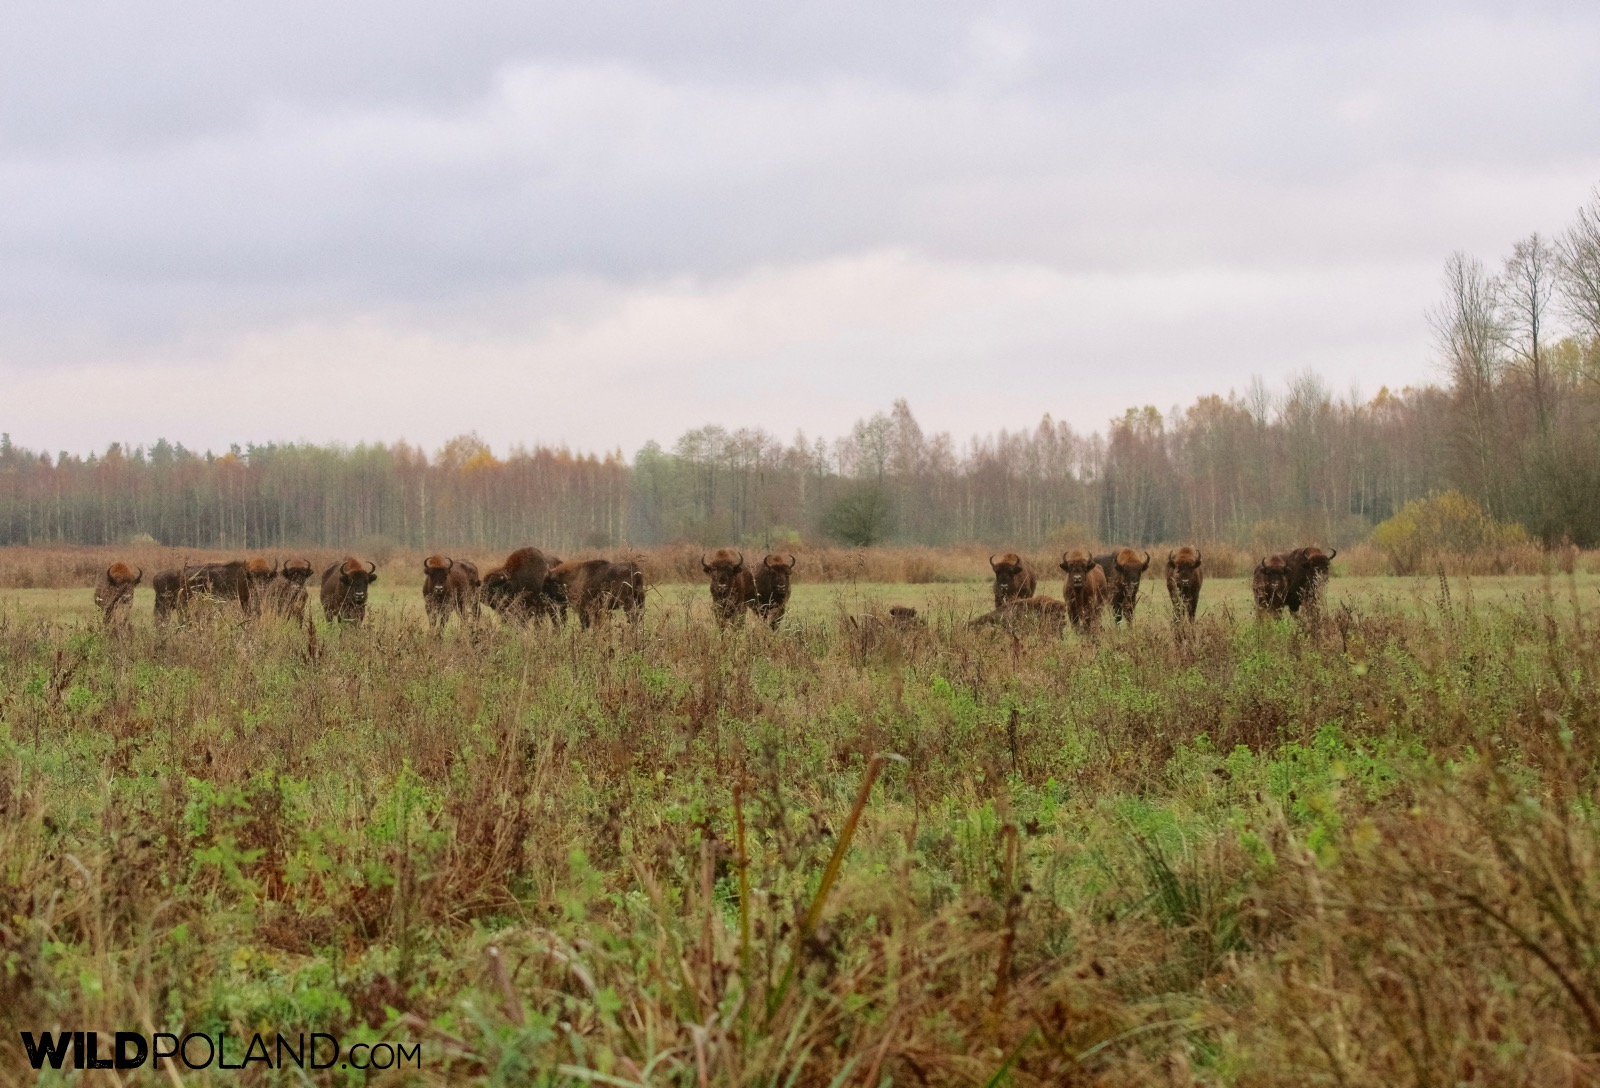 Herd of european bison watching our group, photo by Andrzej Petryna